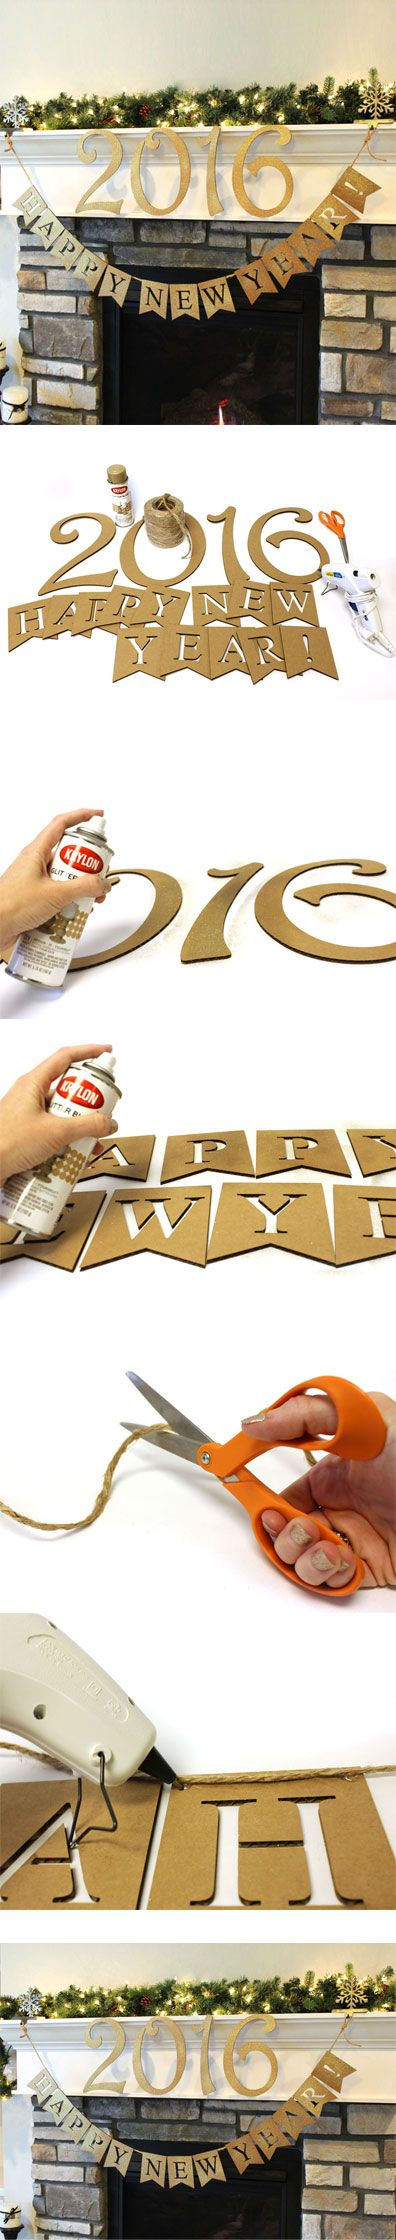 Create a Glittered New Year's Banner and Decorative Numbers | New Year's Letter & Number Kit | CraftCuts.com